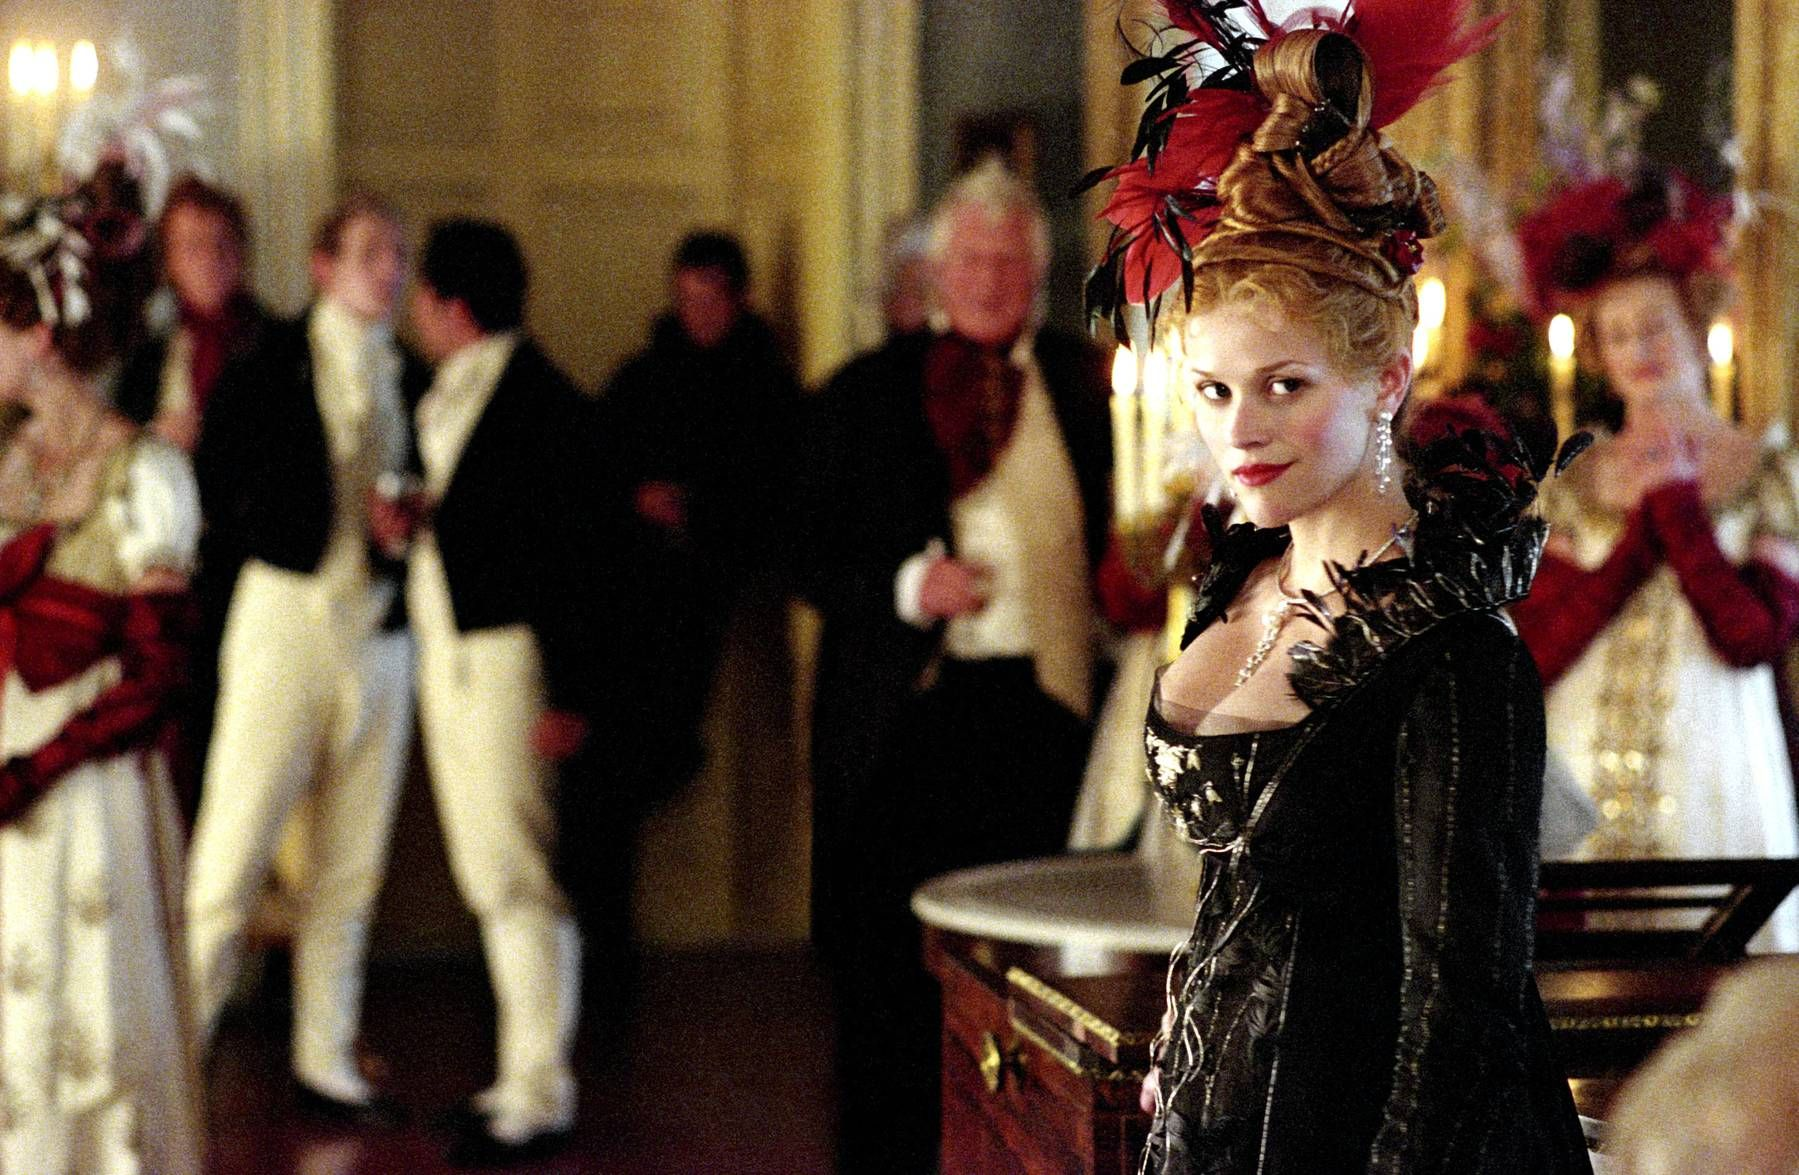 TwentyFive Period Dramas That Make Us Want to Wear